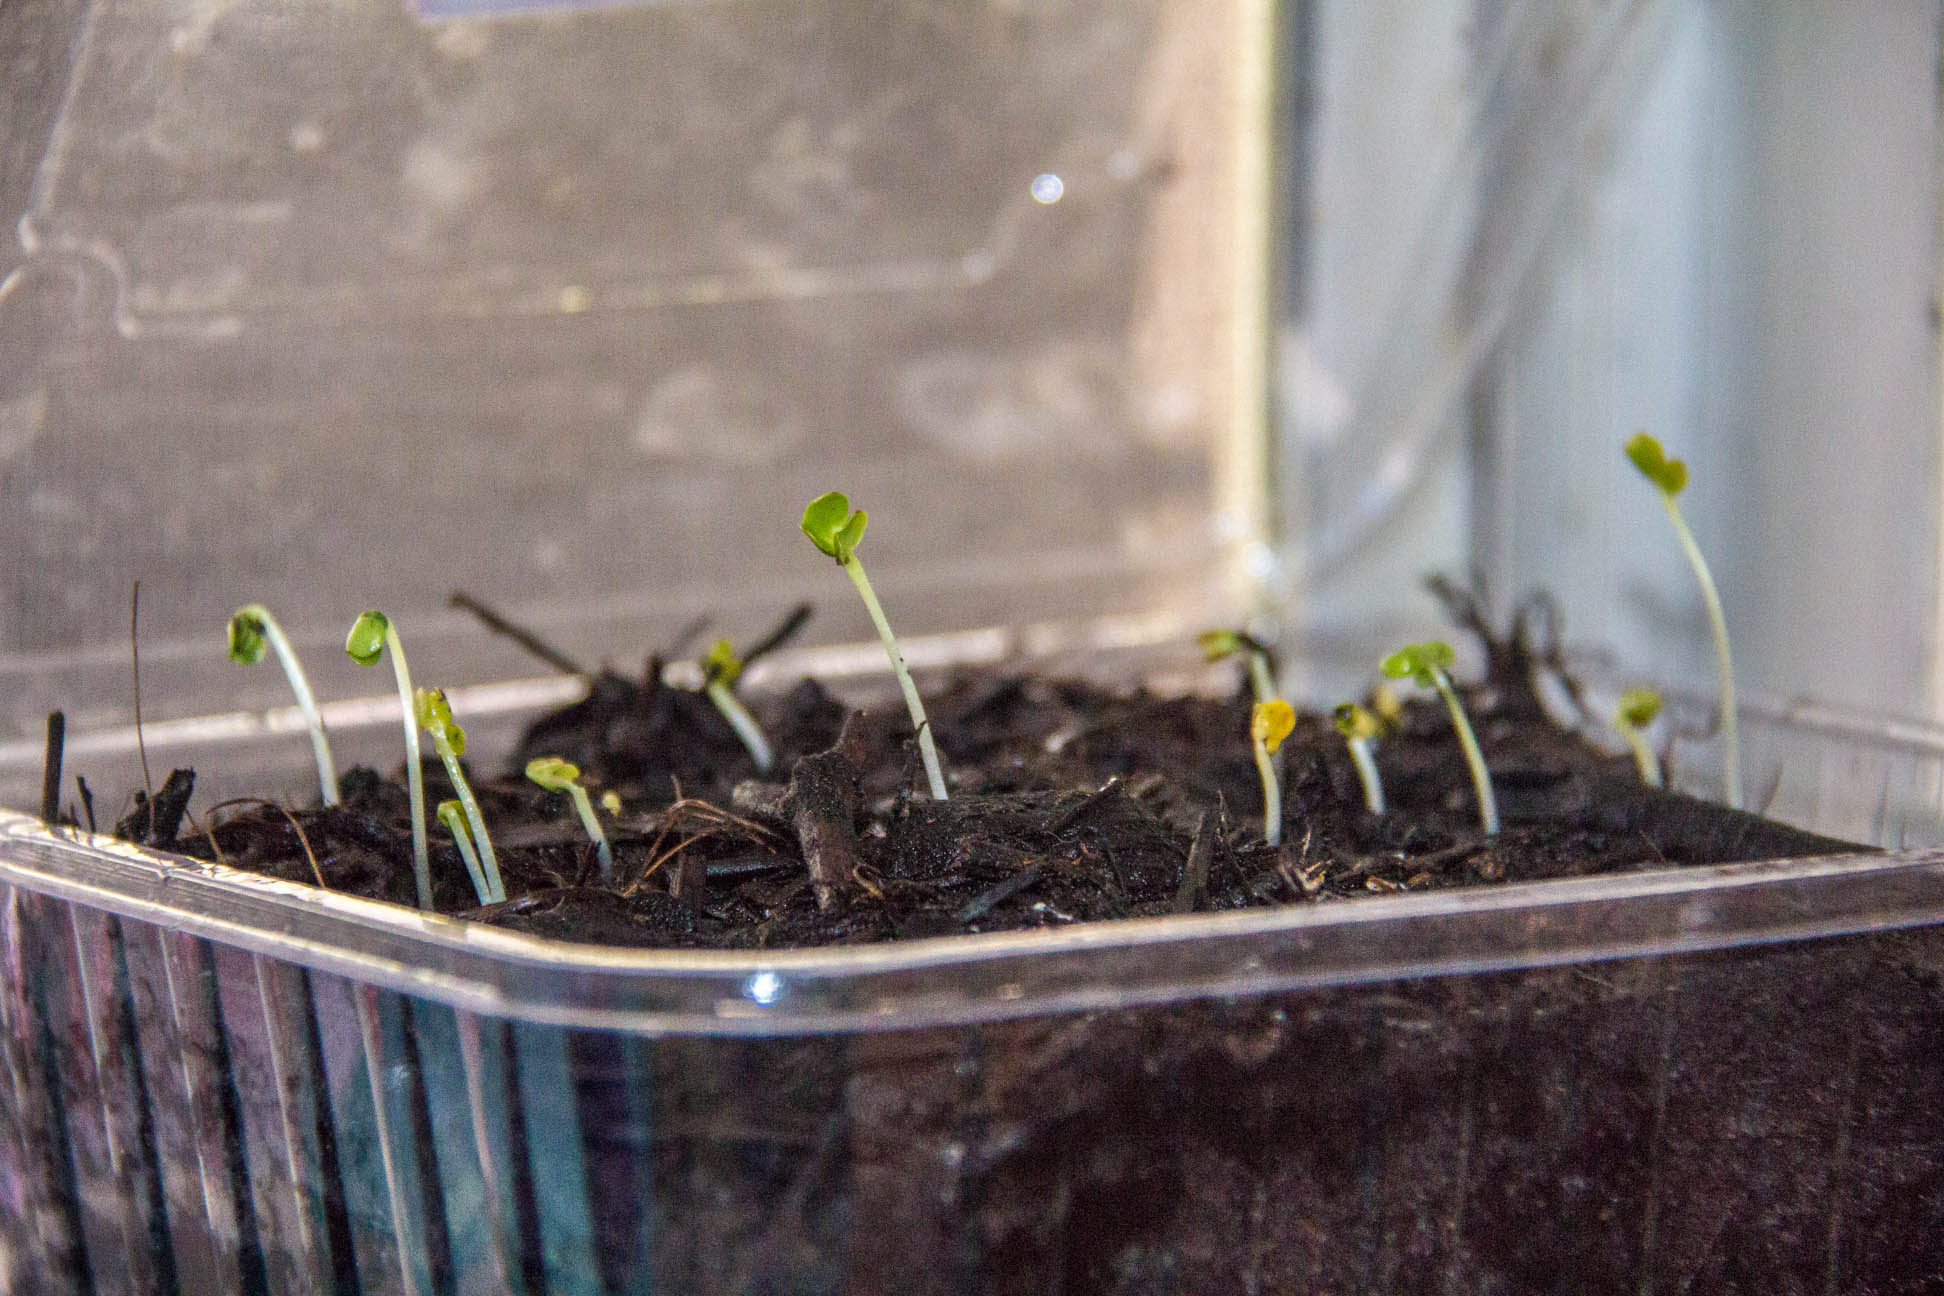 30/04/15 Day 7 more growth. I have no idea what these seedlings are.. Hind sight, going to plant seeds in individual pots with it's own kind.